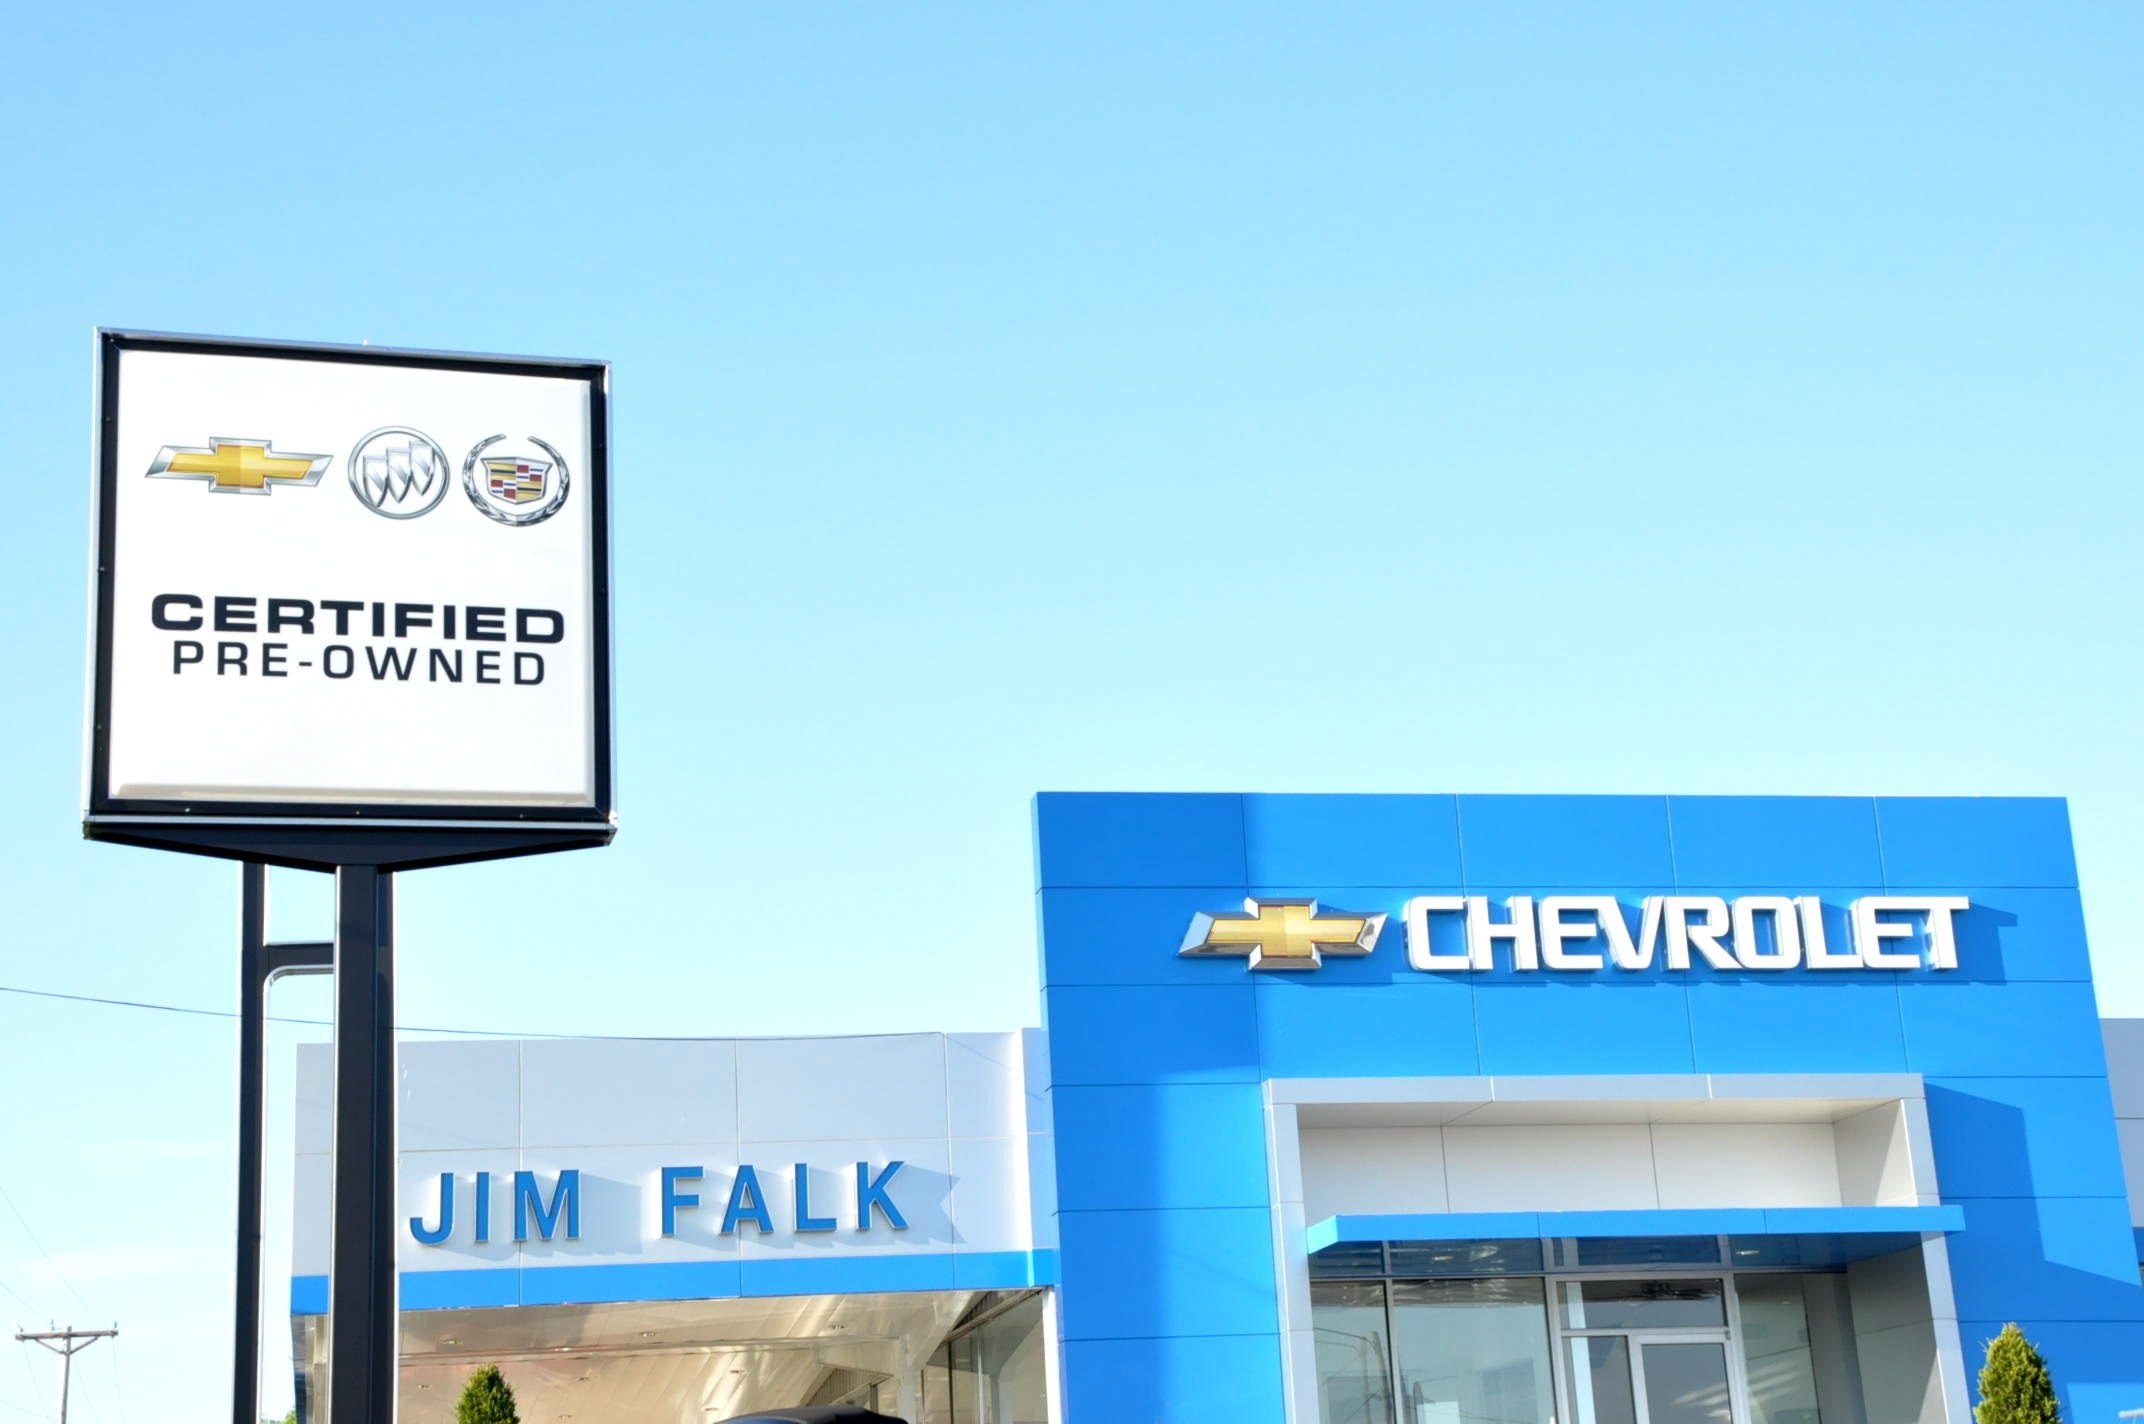 Jim Falk Motors Chevy, Cadillac, Buick dealership in Clinton MO